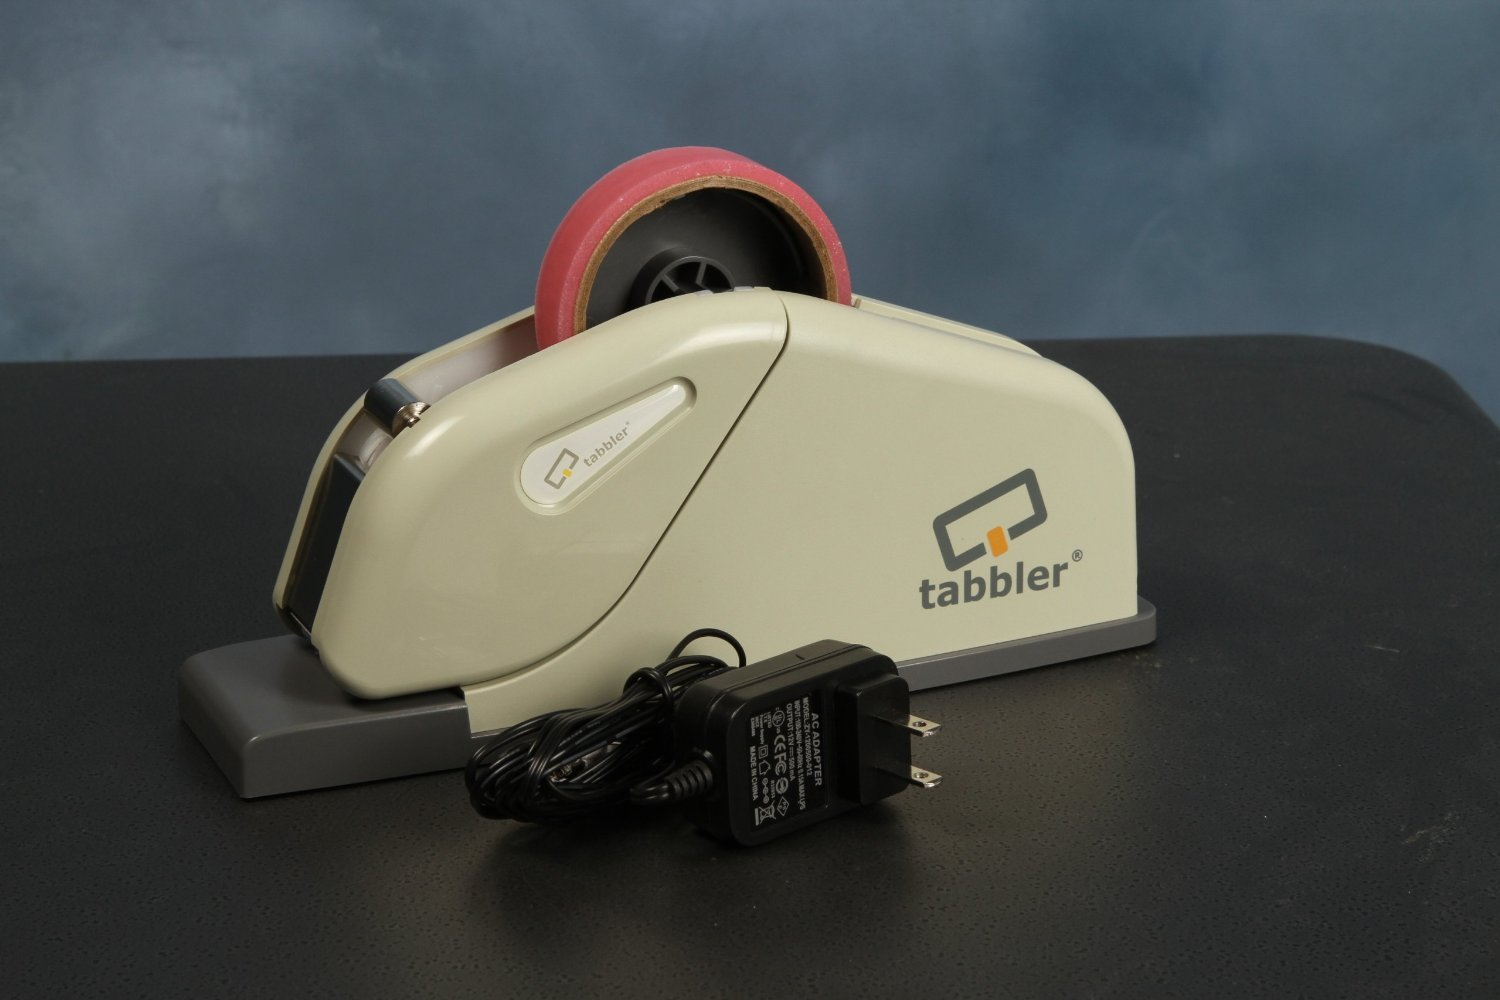 Dynafold TB-100 Tabbler Tabbing Machine, Places a strip of tape on the open edge of folded self-mailers, Ideal for small volume businesses and non-profits that hand-tab mailers and brochures, Affordable and easy to use semi-automated solution for tabbing, Designed to fit on an office Desktop, About